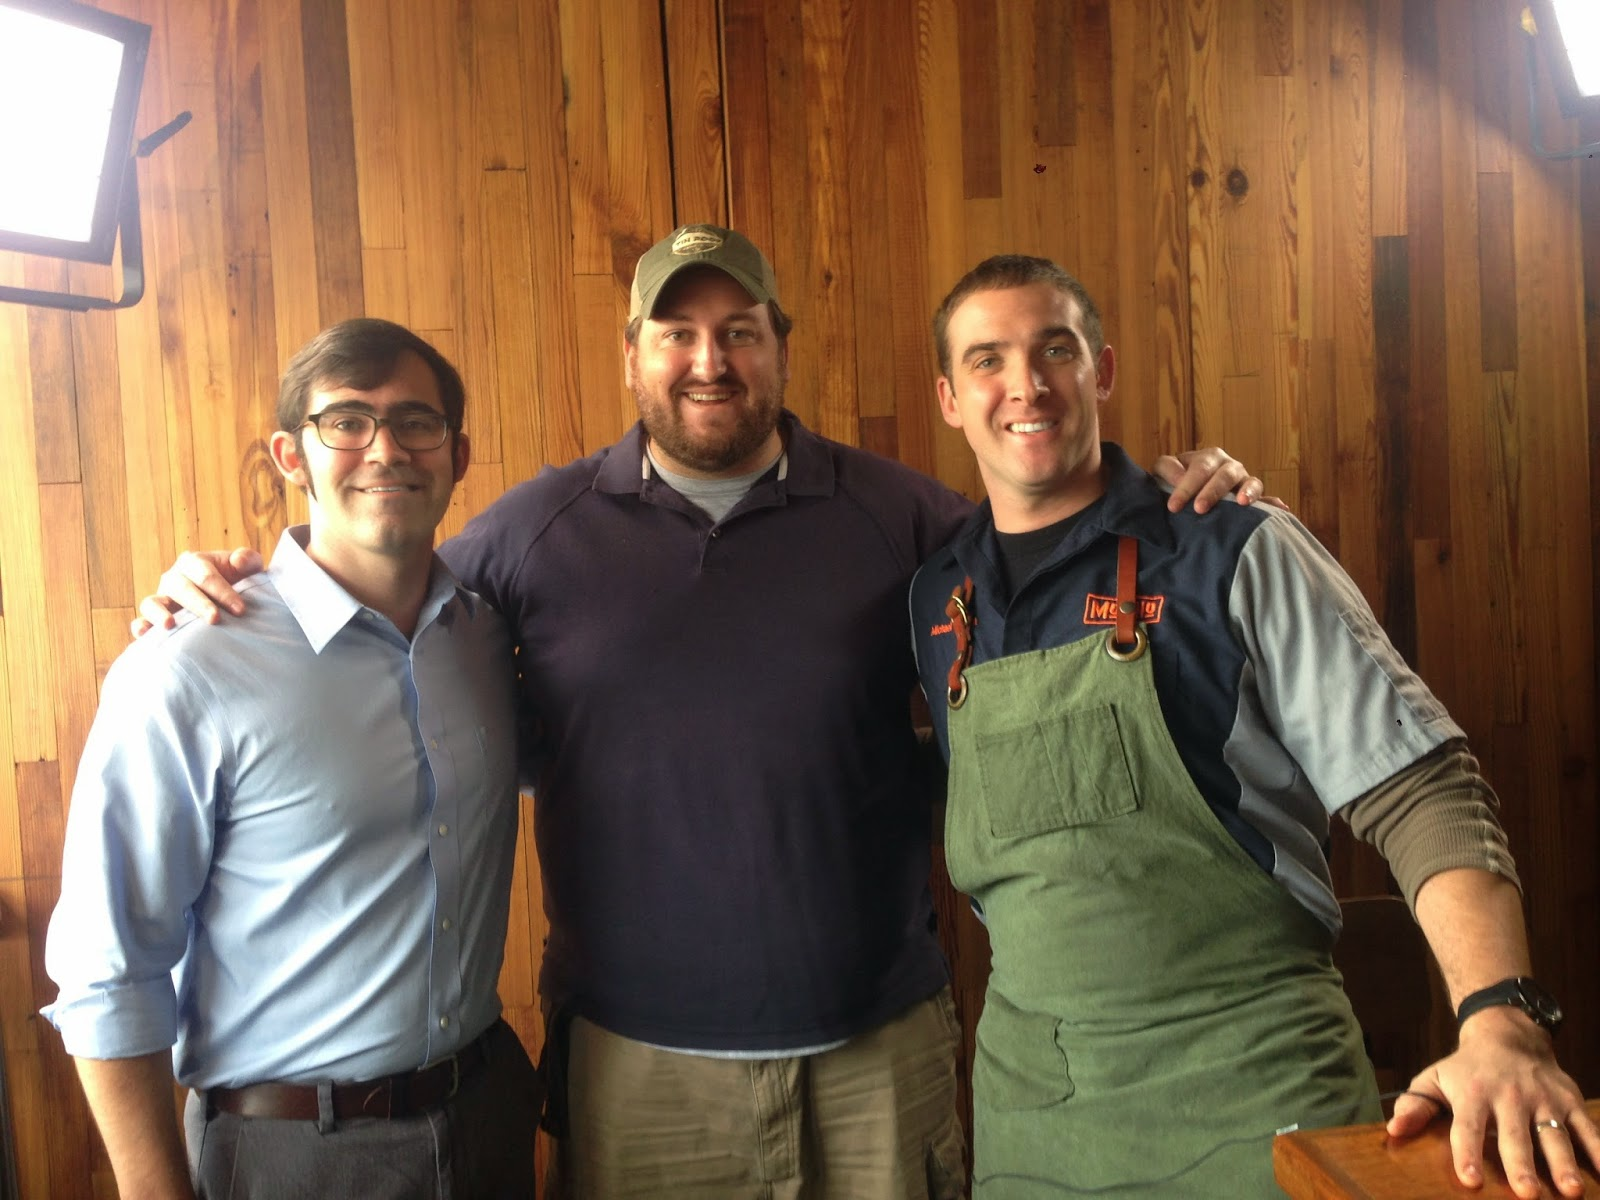 Daniel Shumacher, Jay Ducote, and Michael Gulotta smile after filming at MoPho